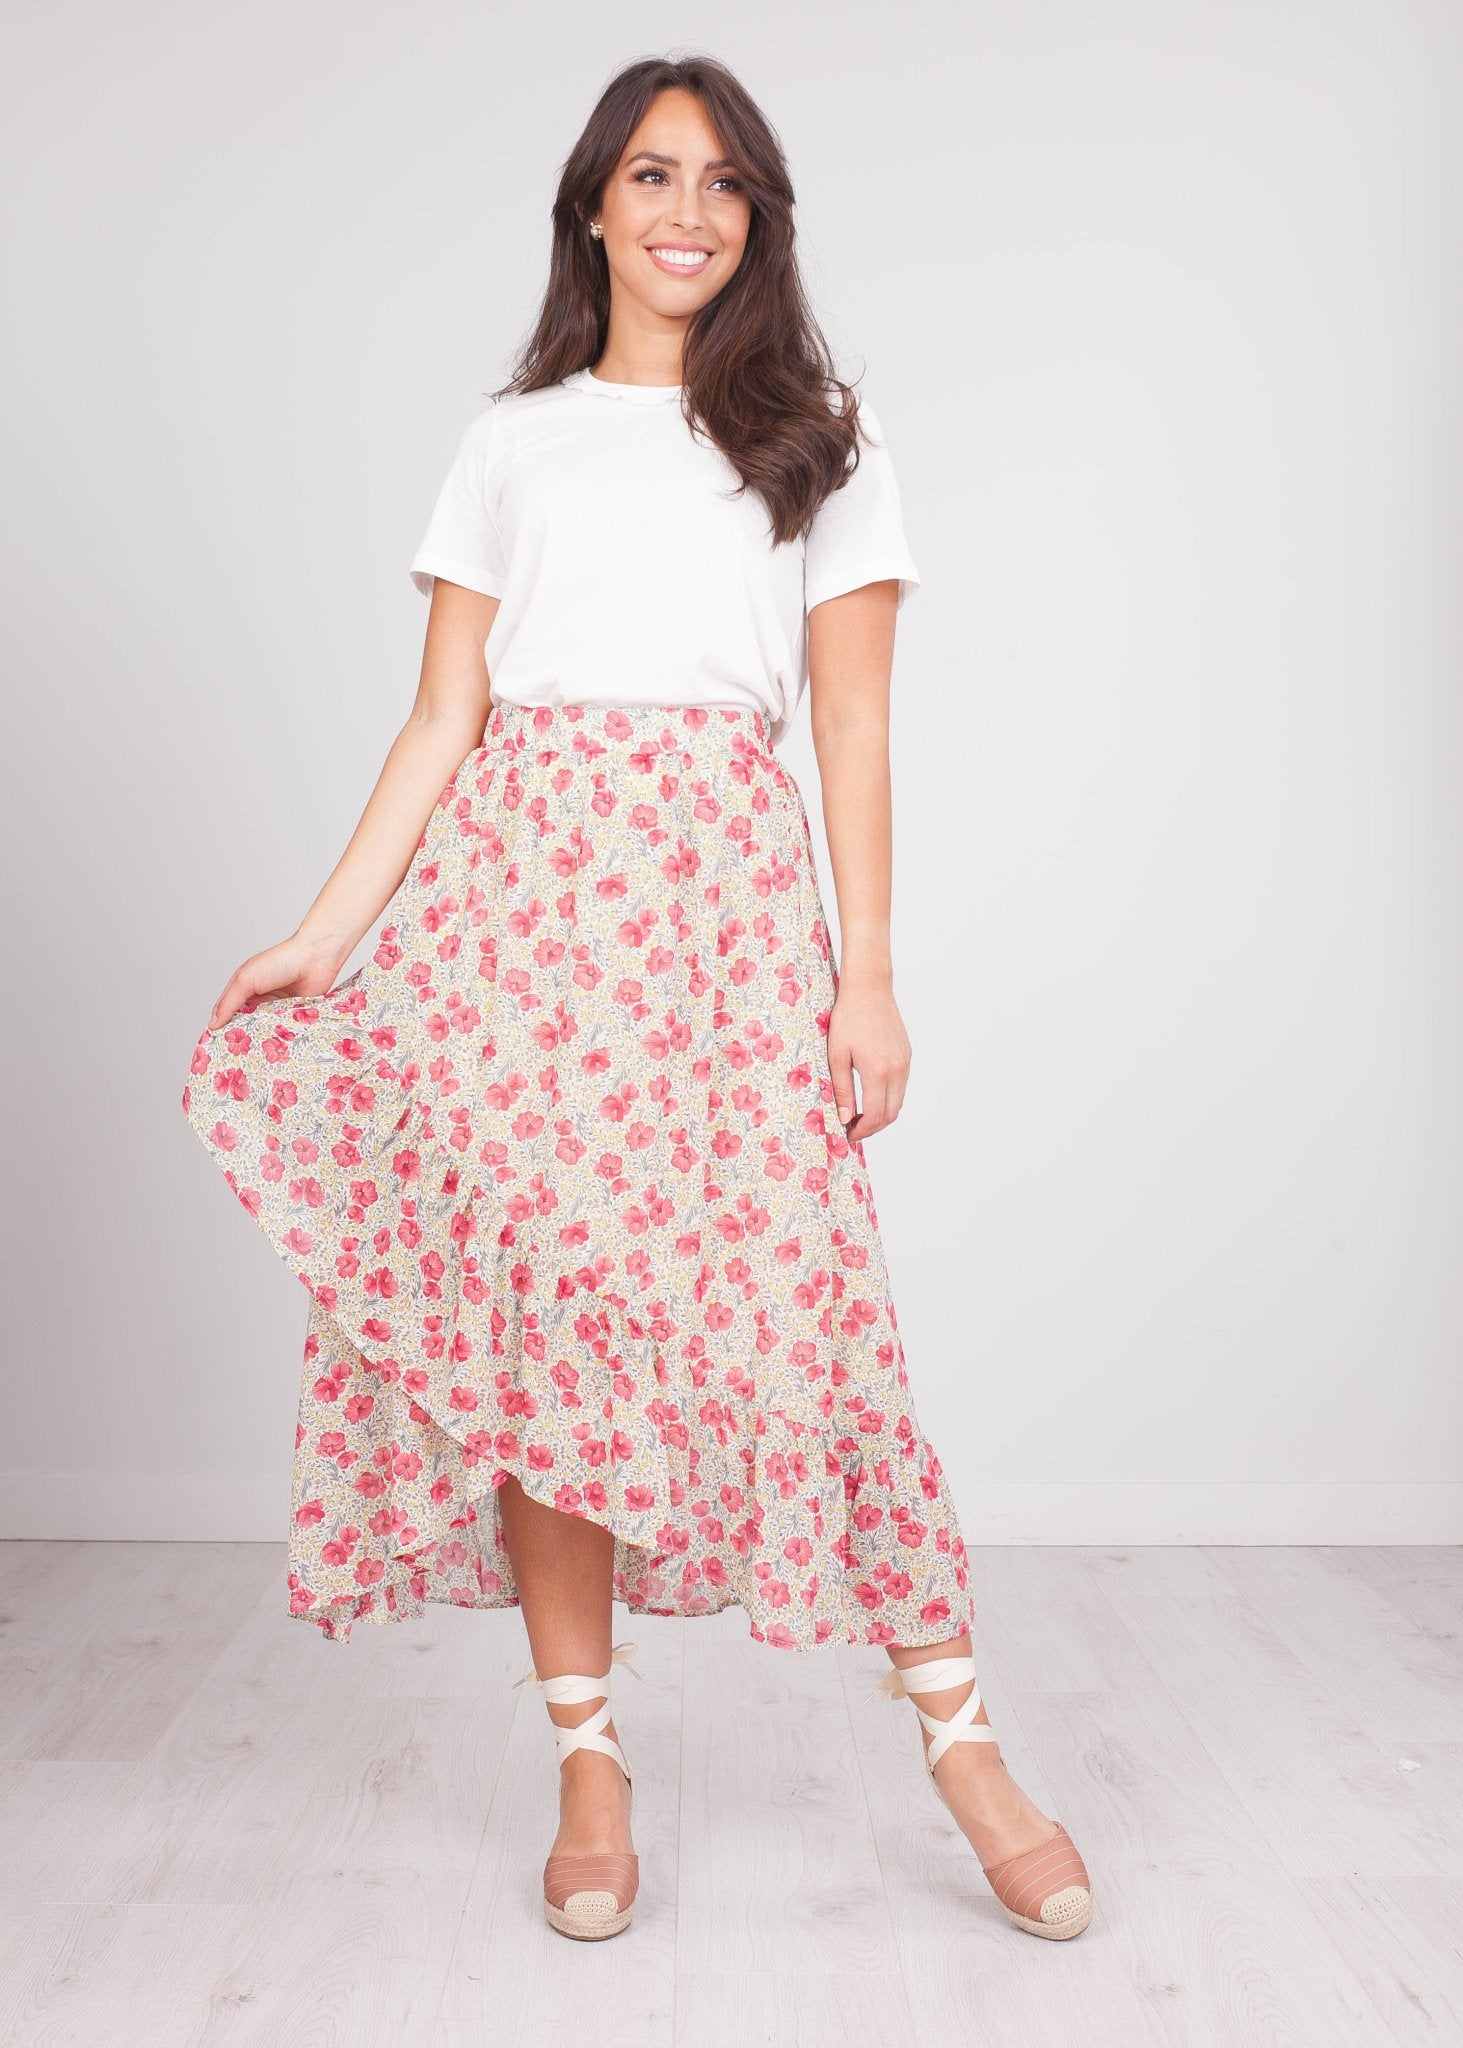 Cherie Cream Floral Midi Skirt - The Walk in Wardrobe